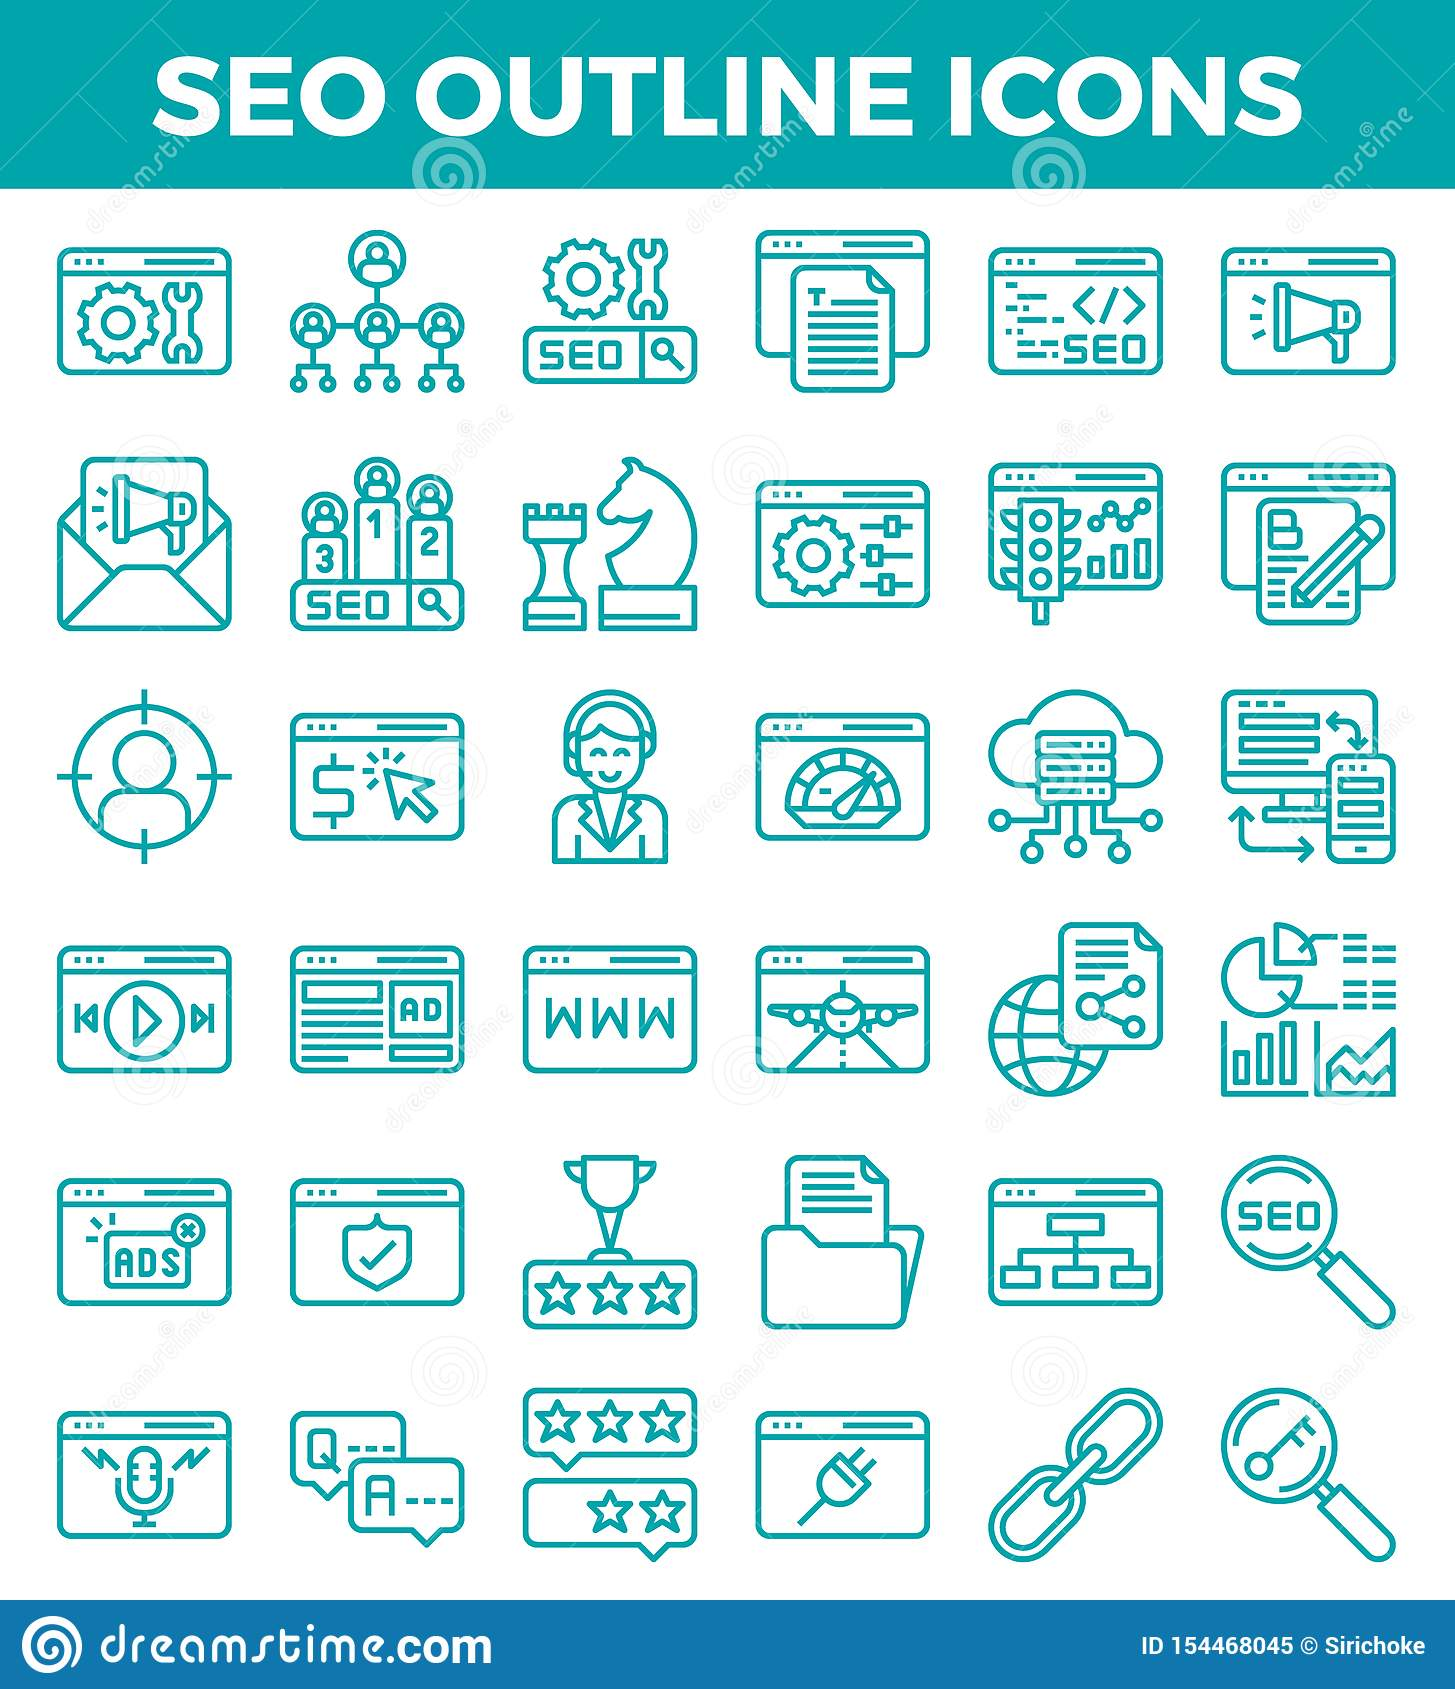 SEO Search engine optimization outline icons. Vector illustration